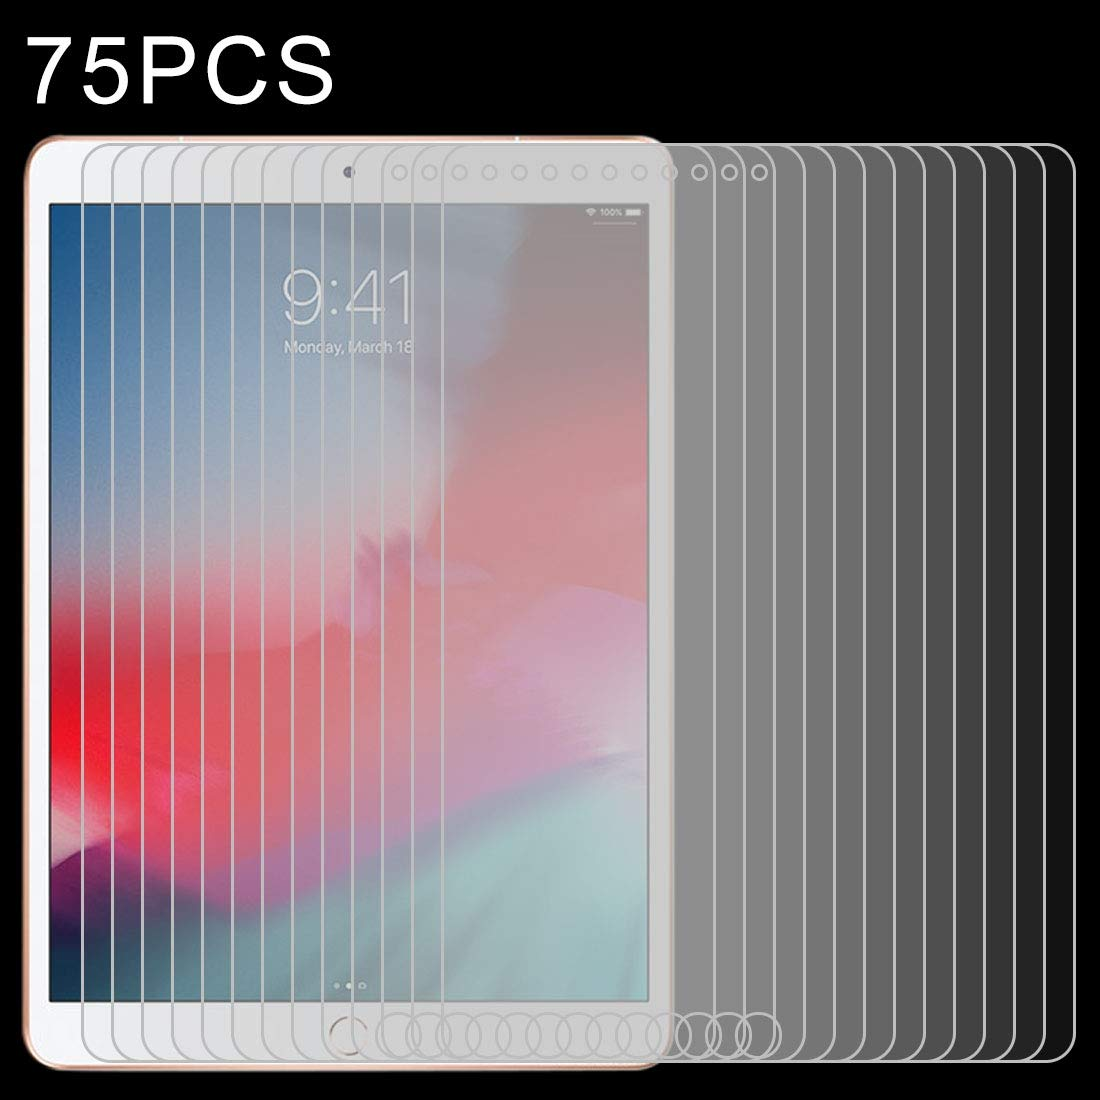 YCDZ STORE Tempered Glass Film 75 PCS 0.4mm 9H Surface Hardness Explosion-Proof Tempered Glass Film for iPad Air 2019